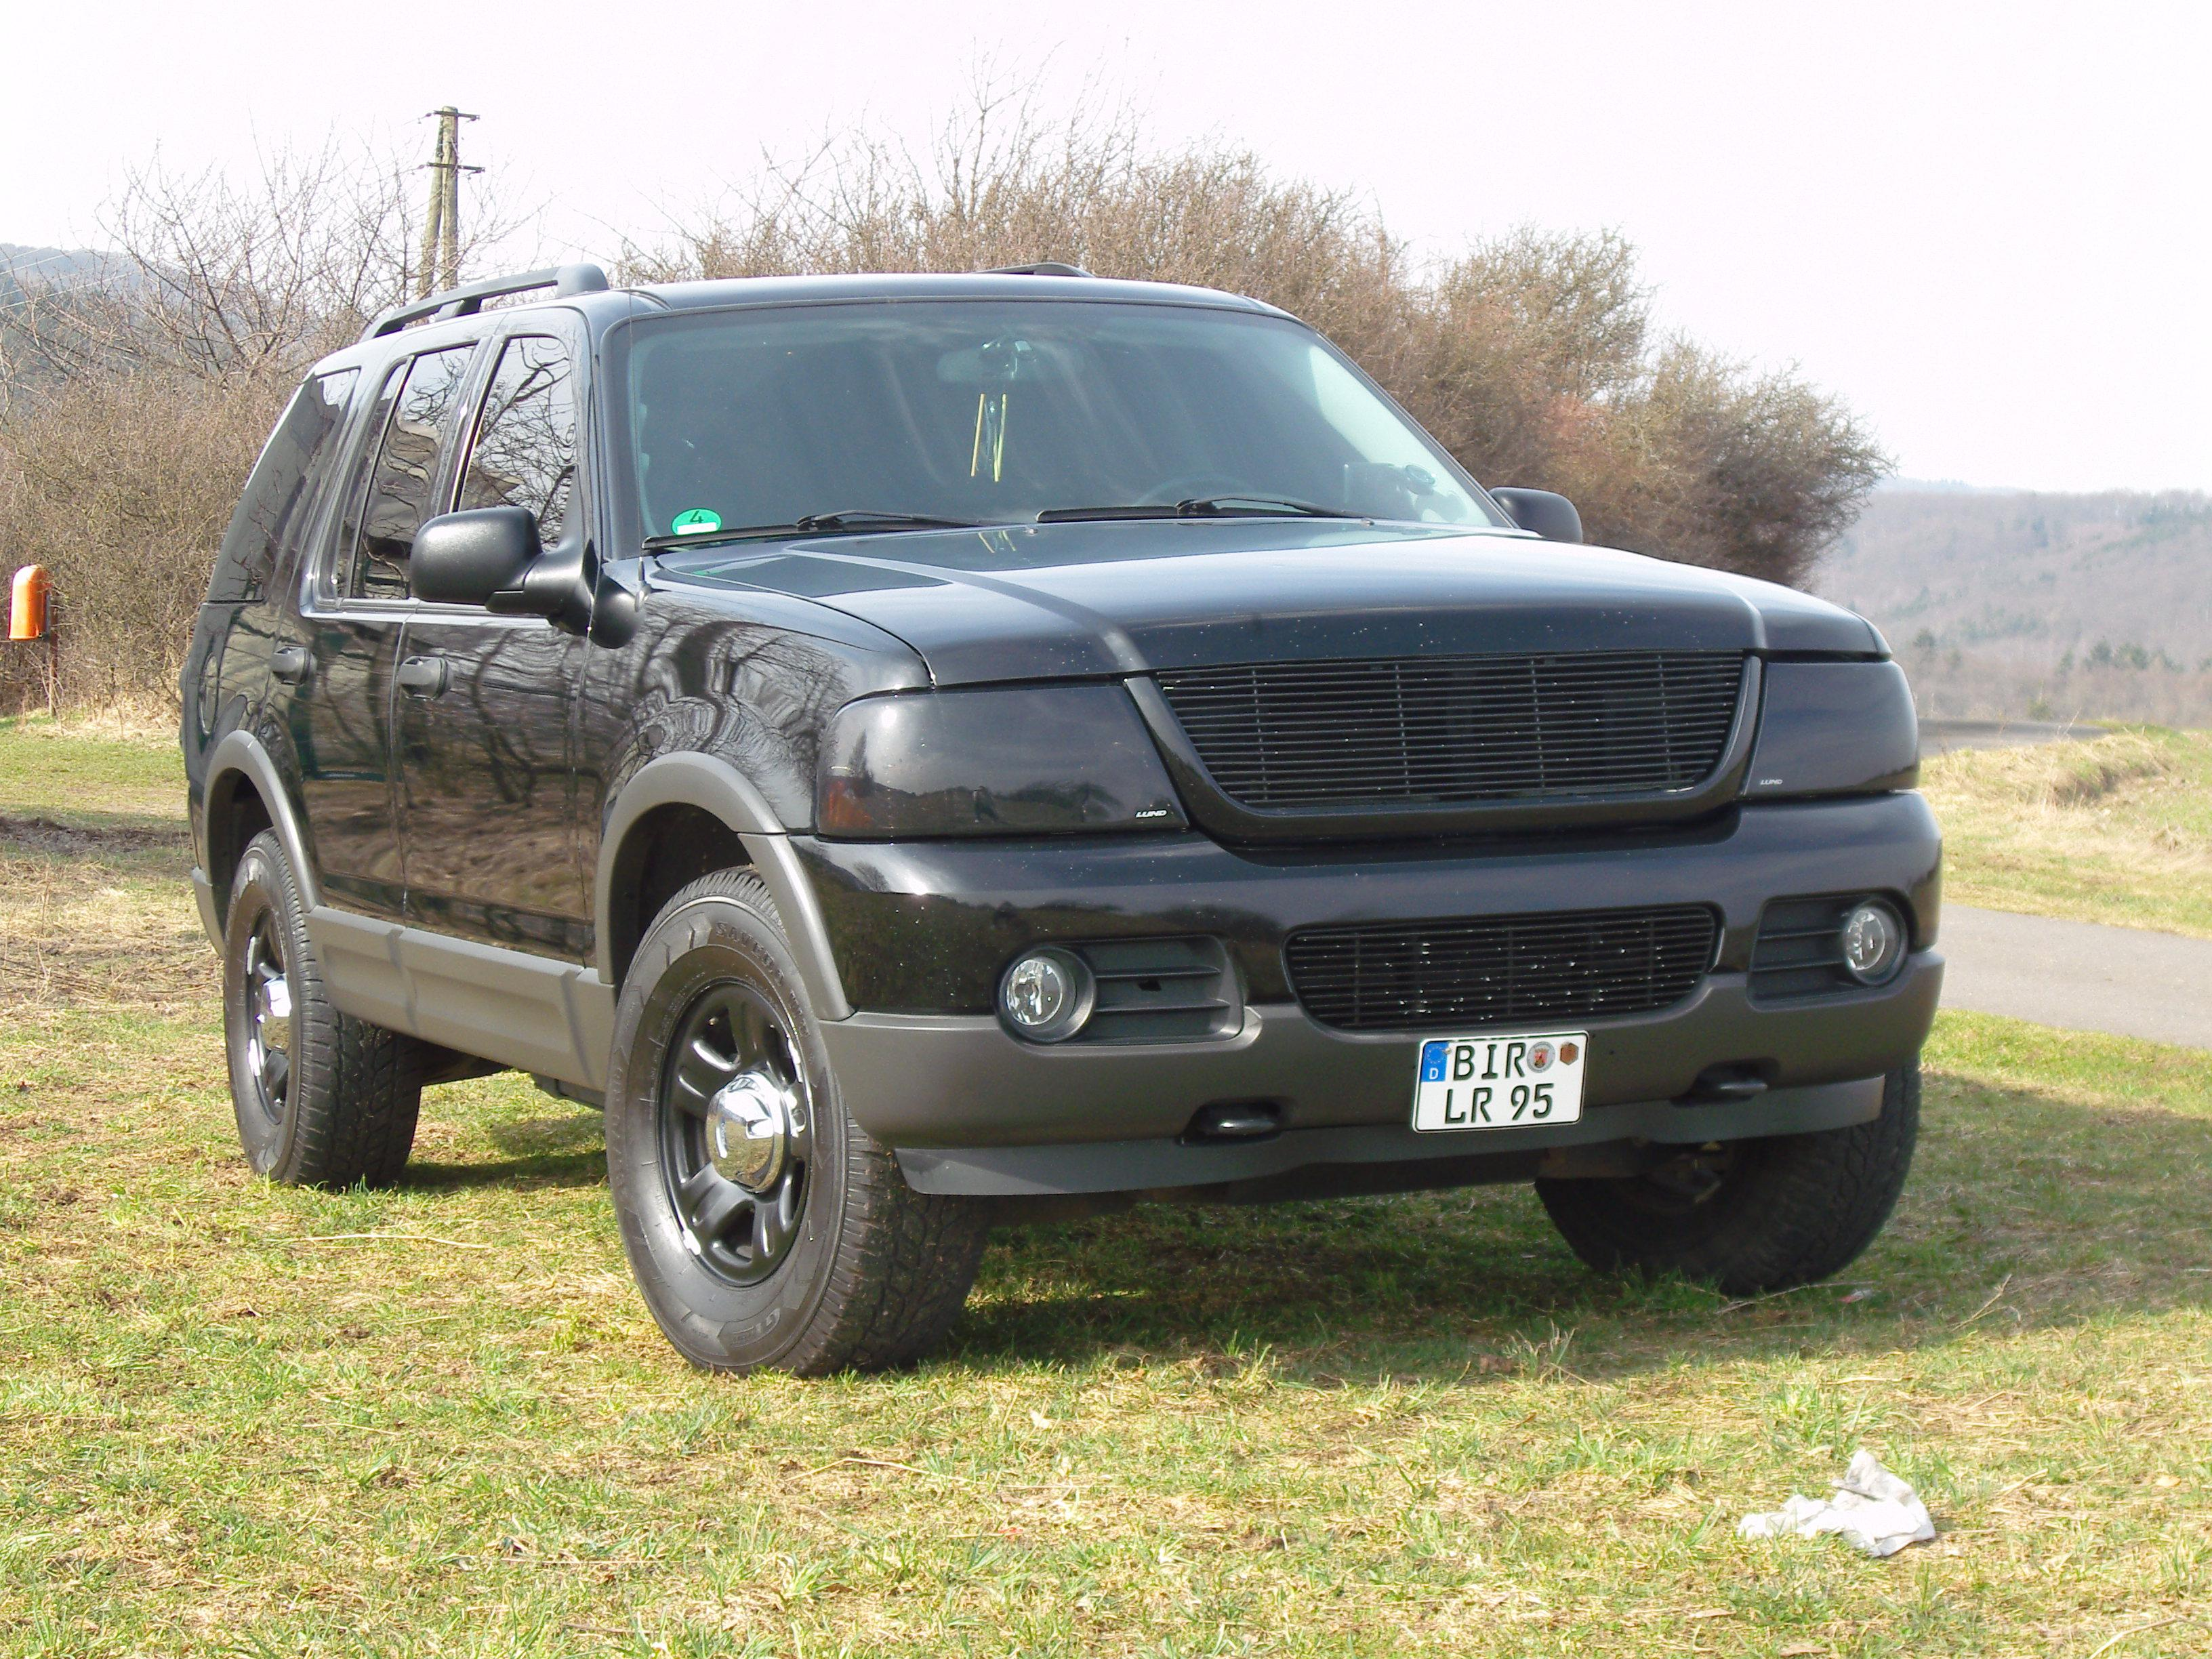 2003 ford explorer - Ford Explorer Blacked Out